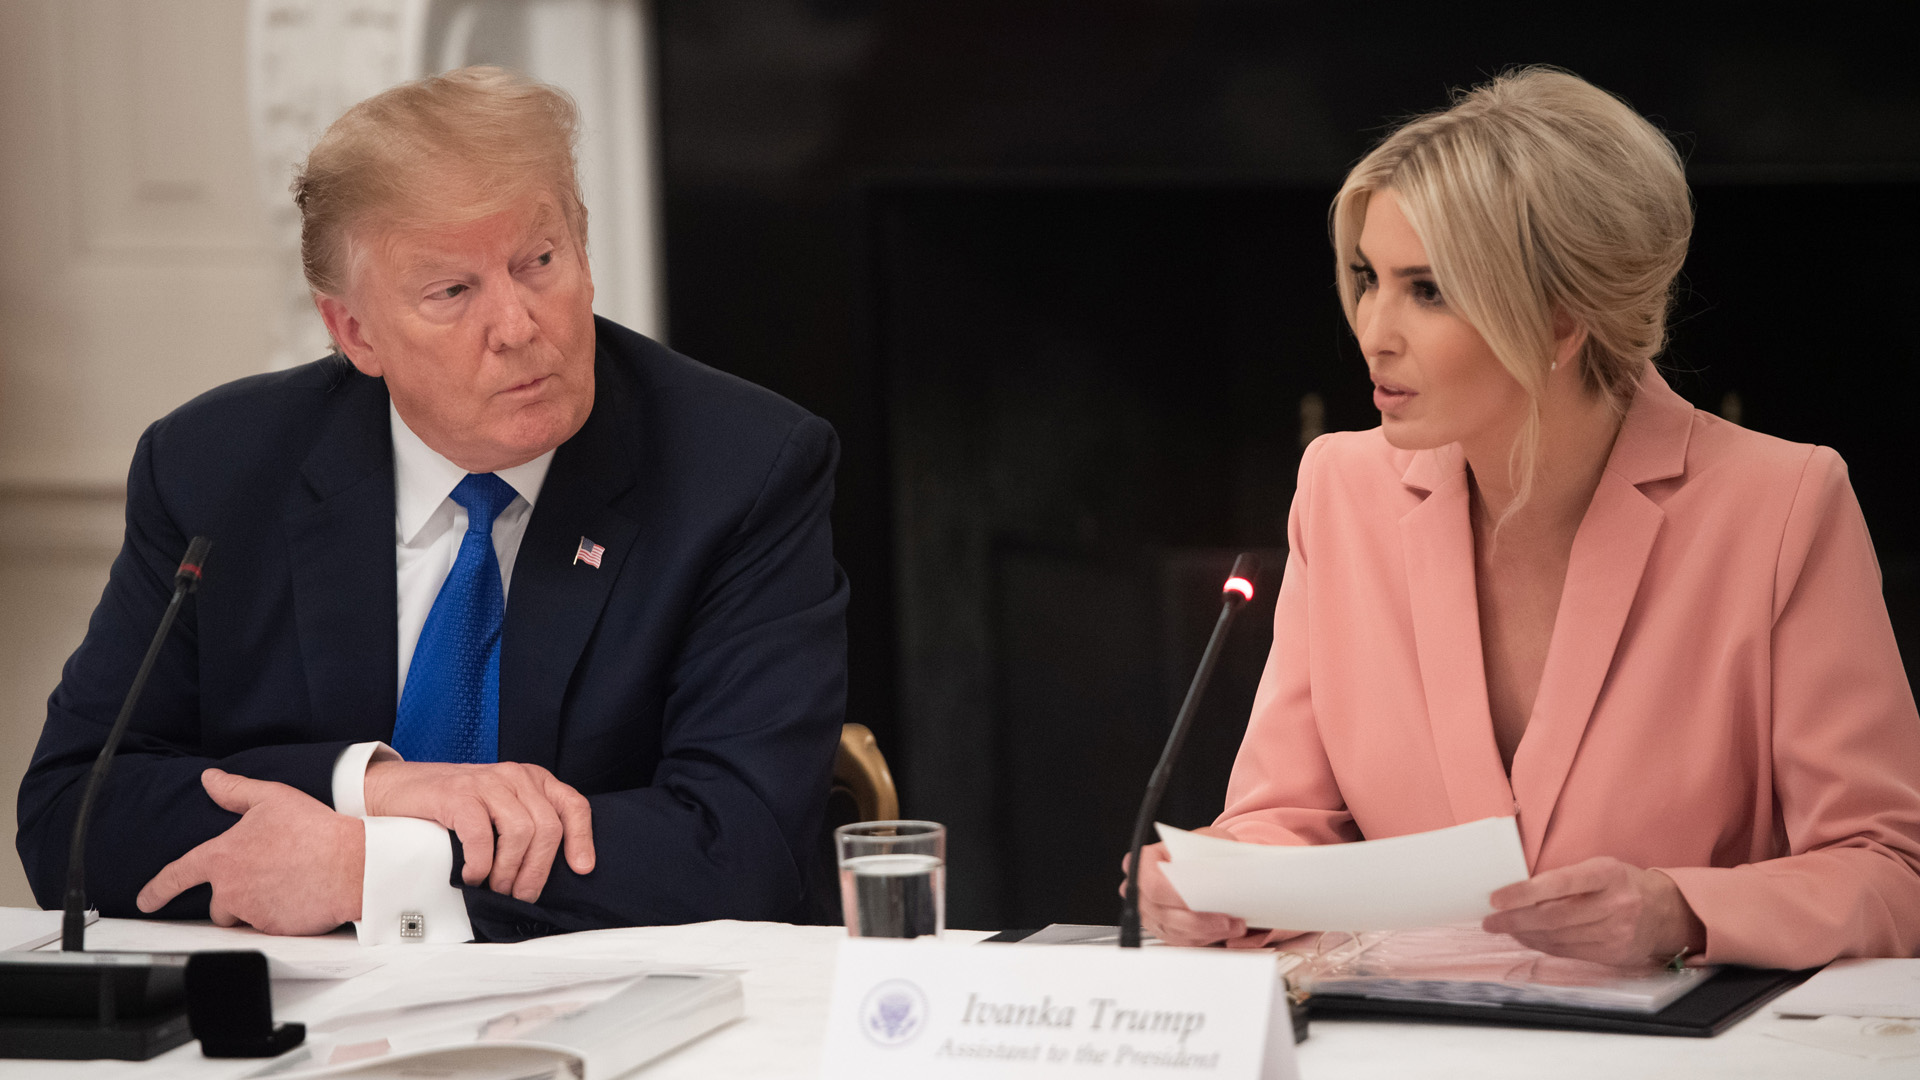 President Donald Trump speaks alongside senior advisor and daughter Ivanka Trump (R) at a meeting in the White House in Washington, DC, March 6, 2019. (Credit: SAUL LOEB/AFP/Getty Images)